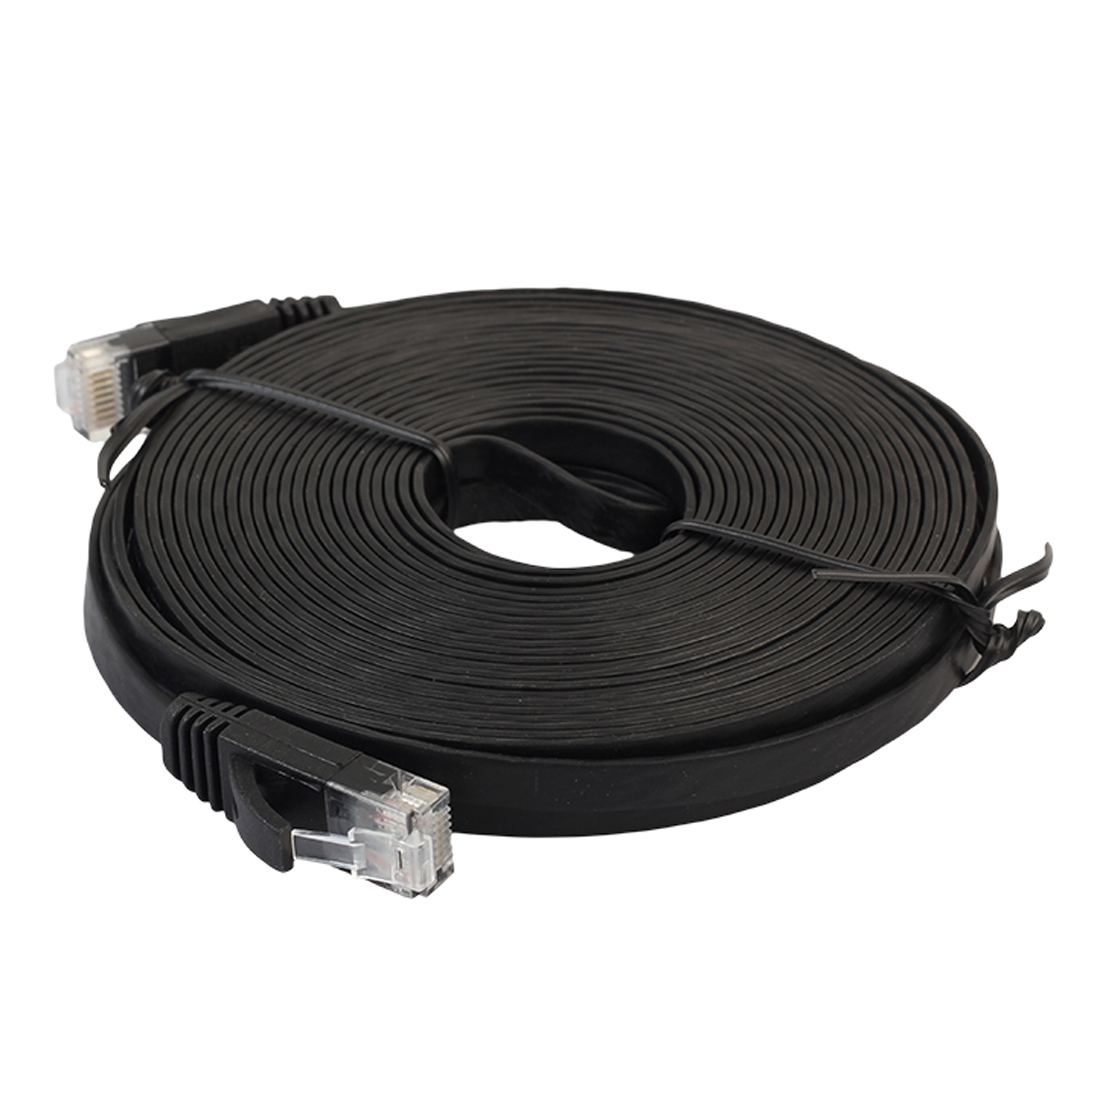 15m cat6 ultra thin flat ethernet network lan cable patch. Black Bedroom Furniture Sets. Home Design Ideas